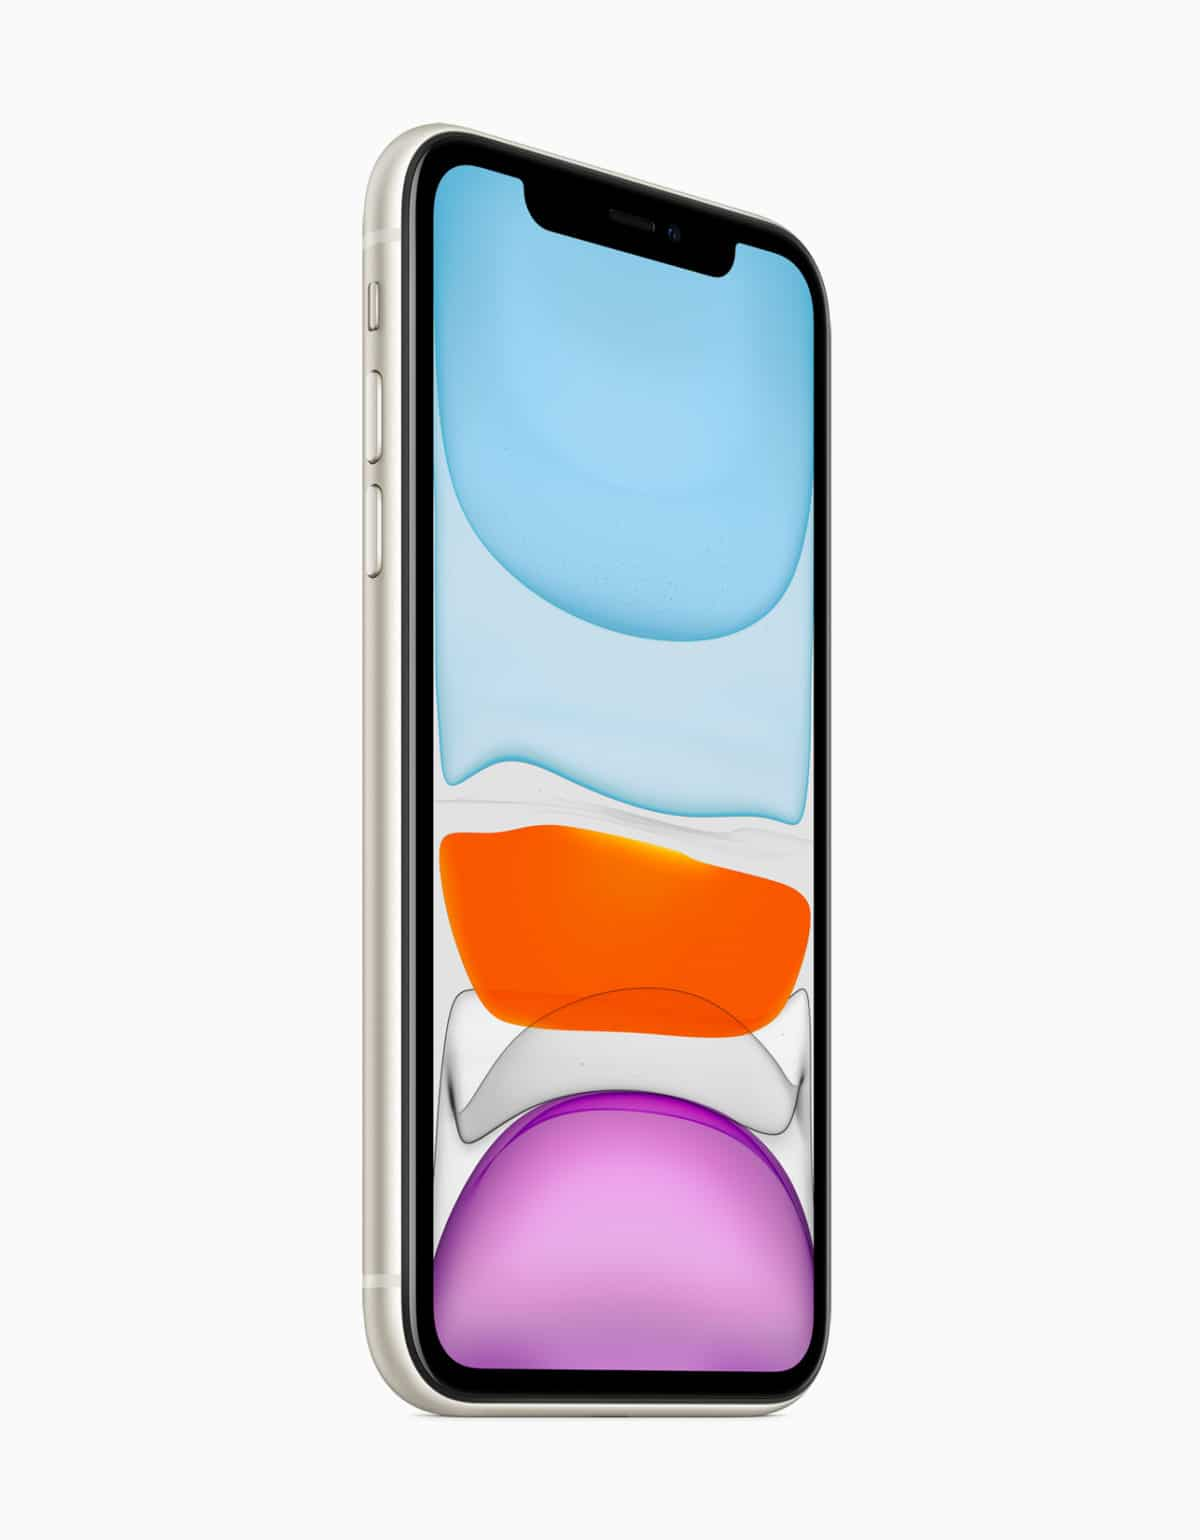 iPhone 11 Pre-order tips